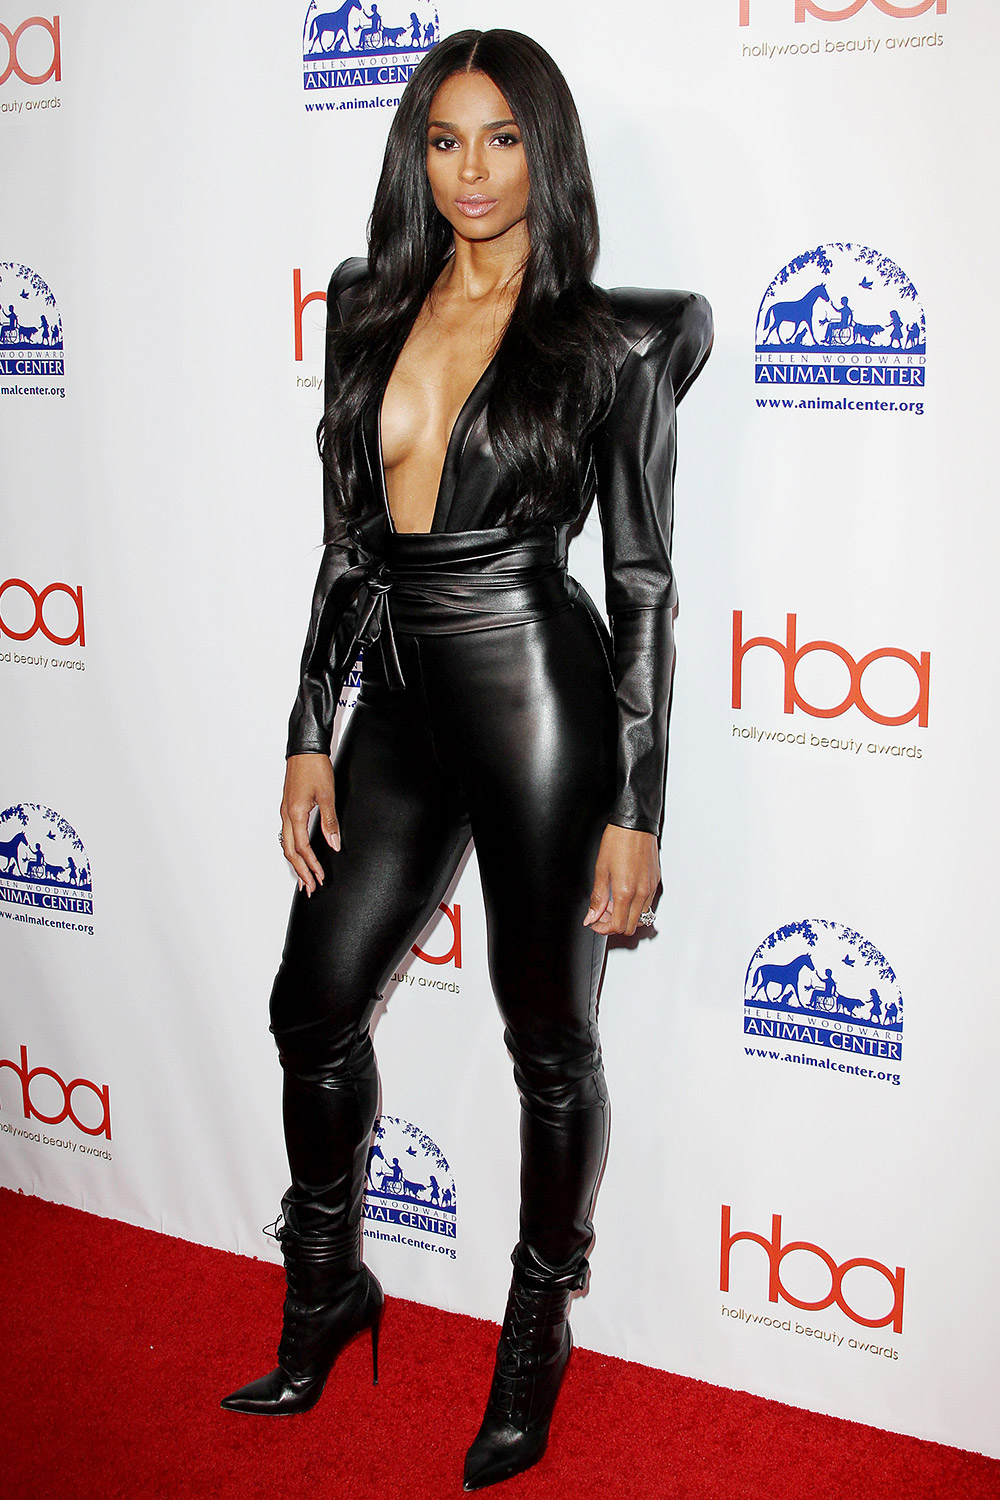 Ciara attends 5th Annual Hollywood Beauty Awards